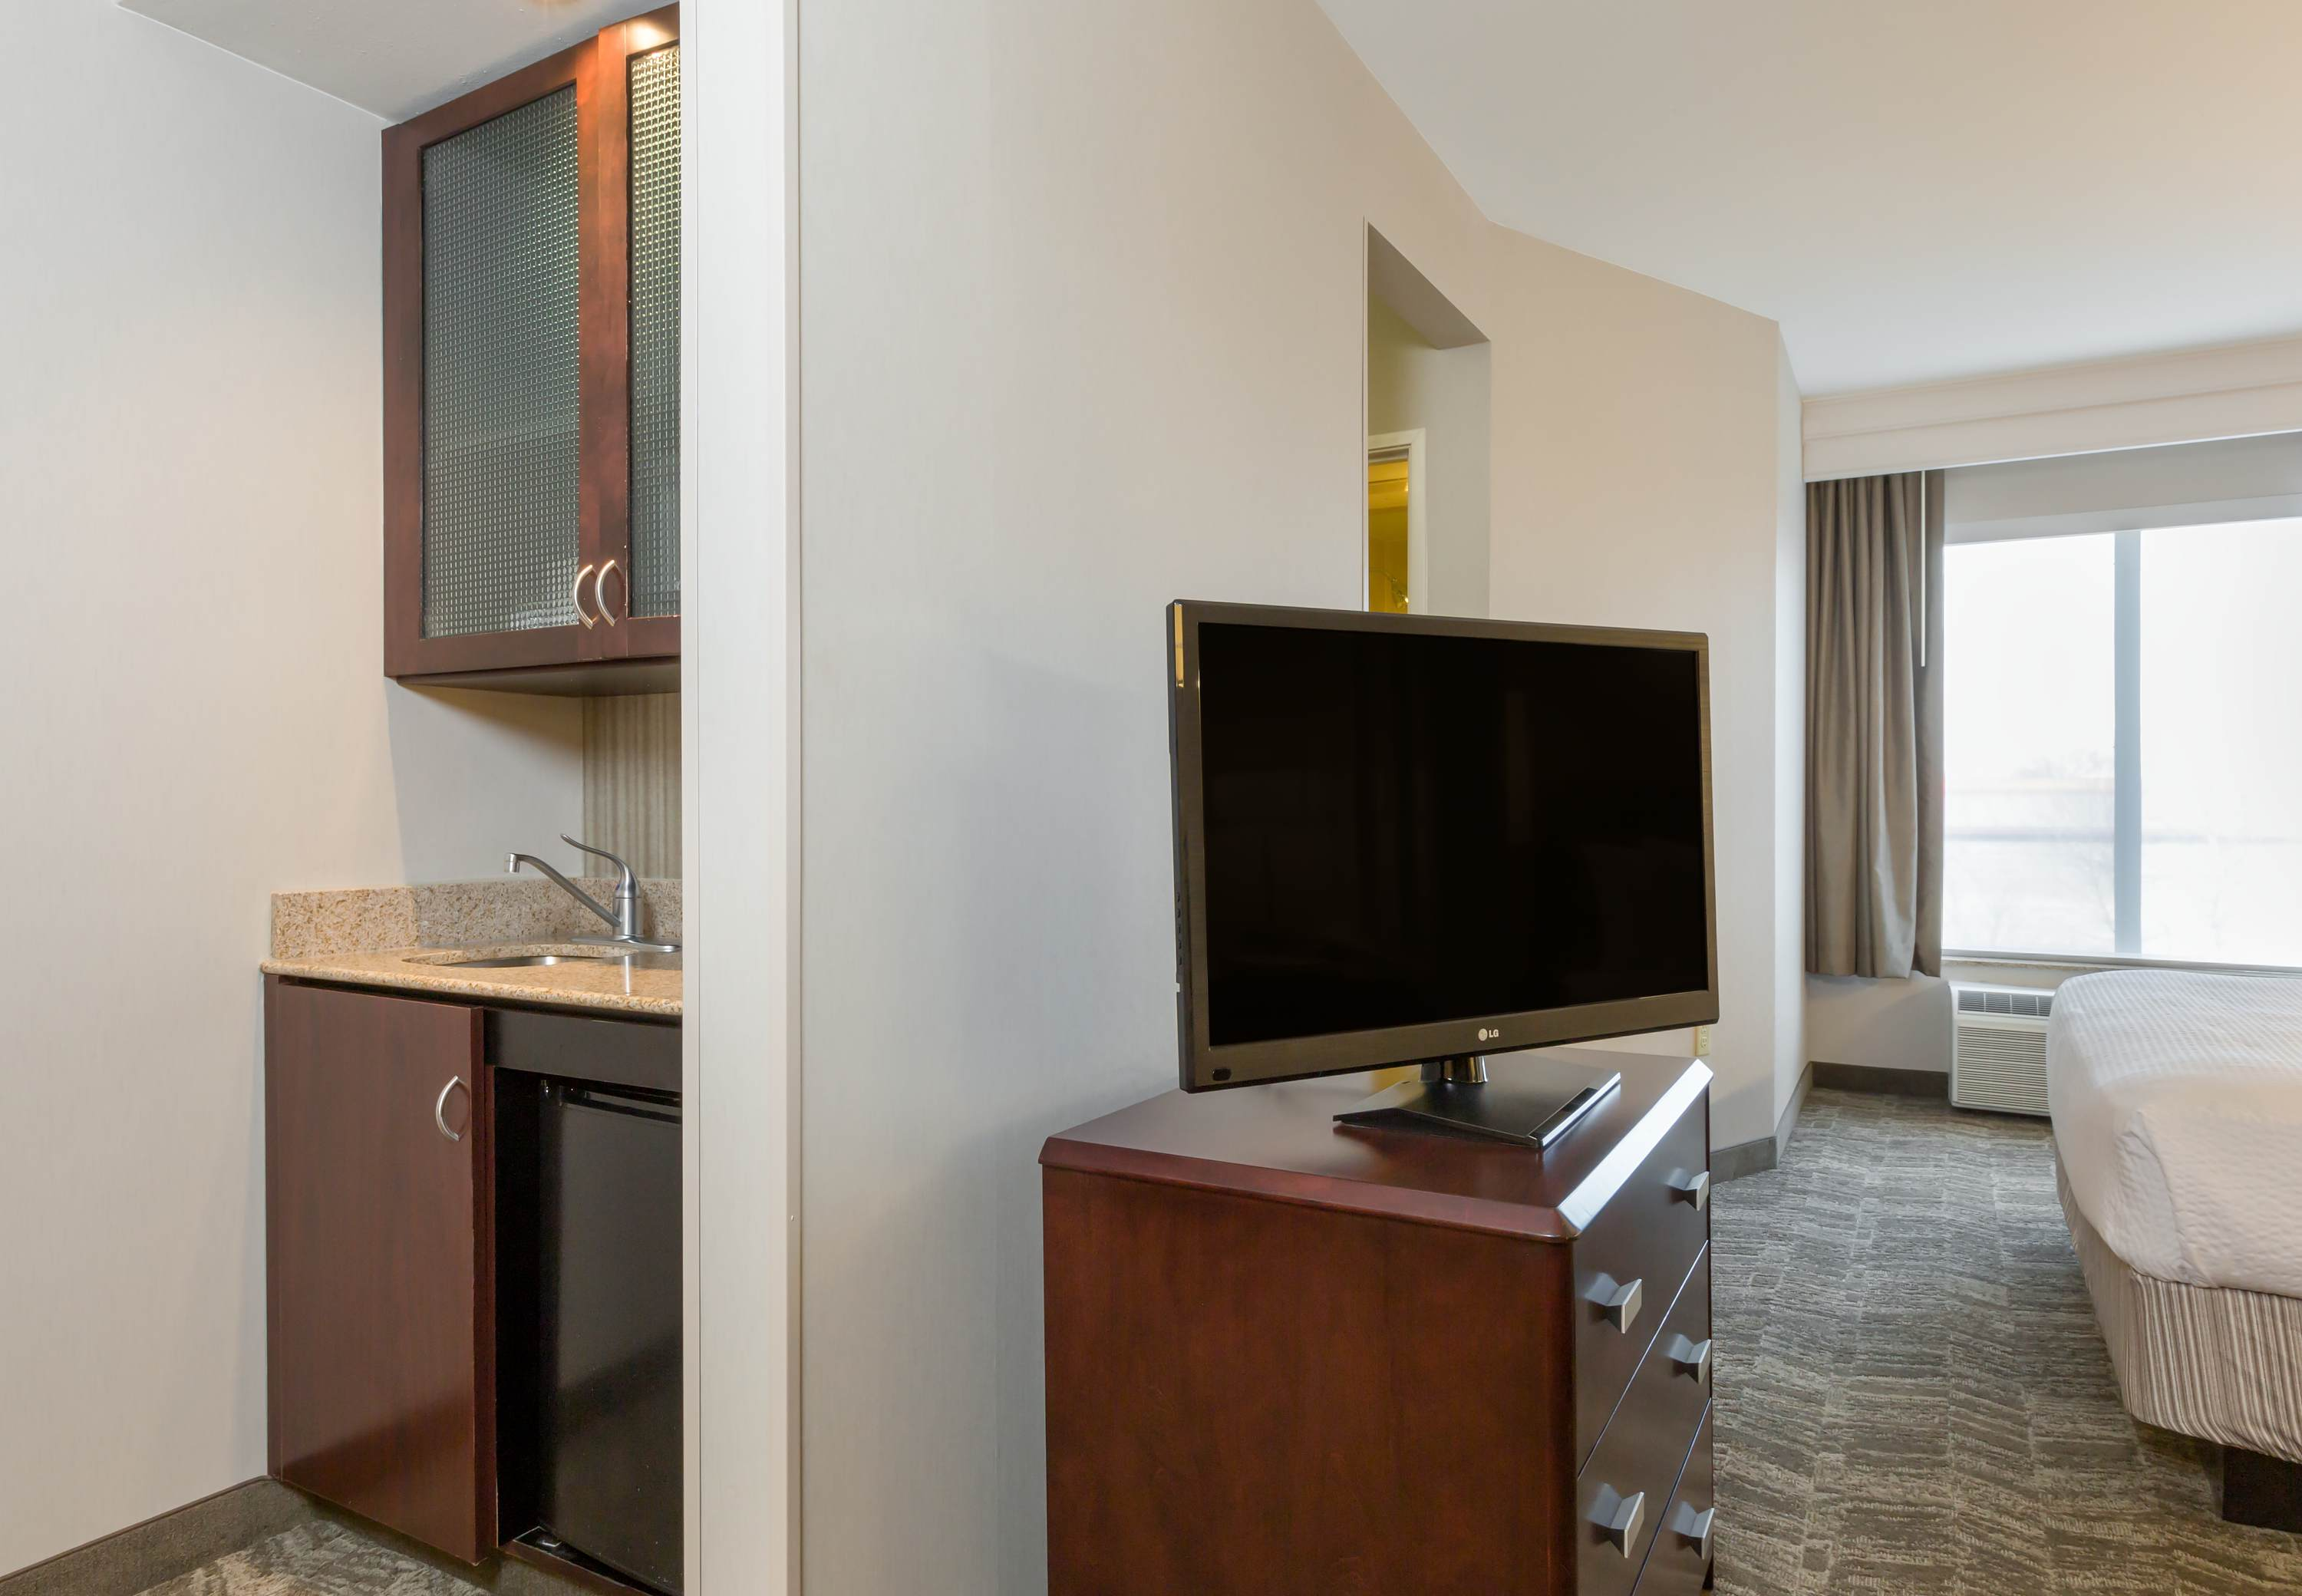 SpringHill Suites by Marriott Indianapolis Fishers image 32